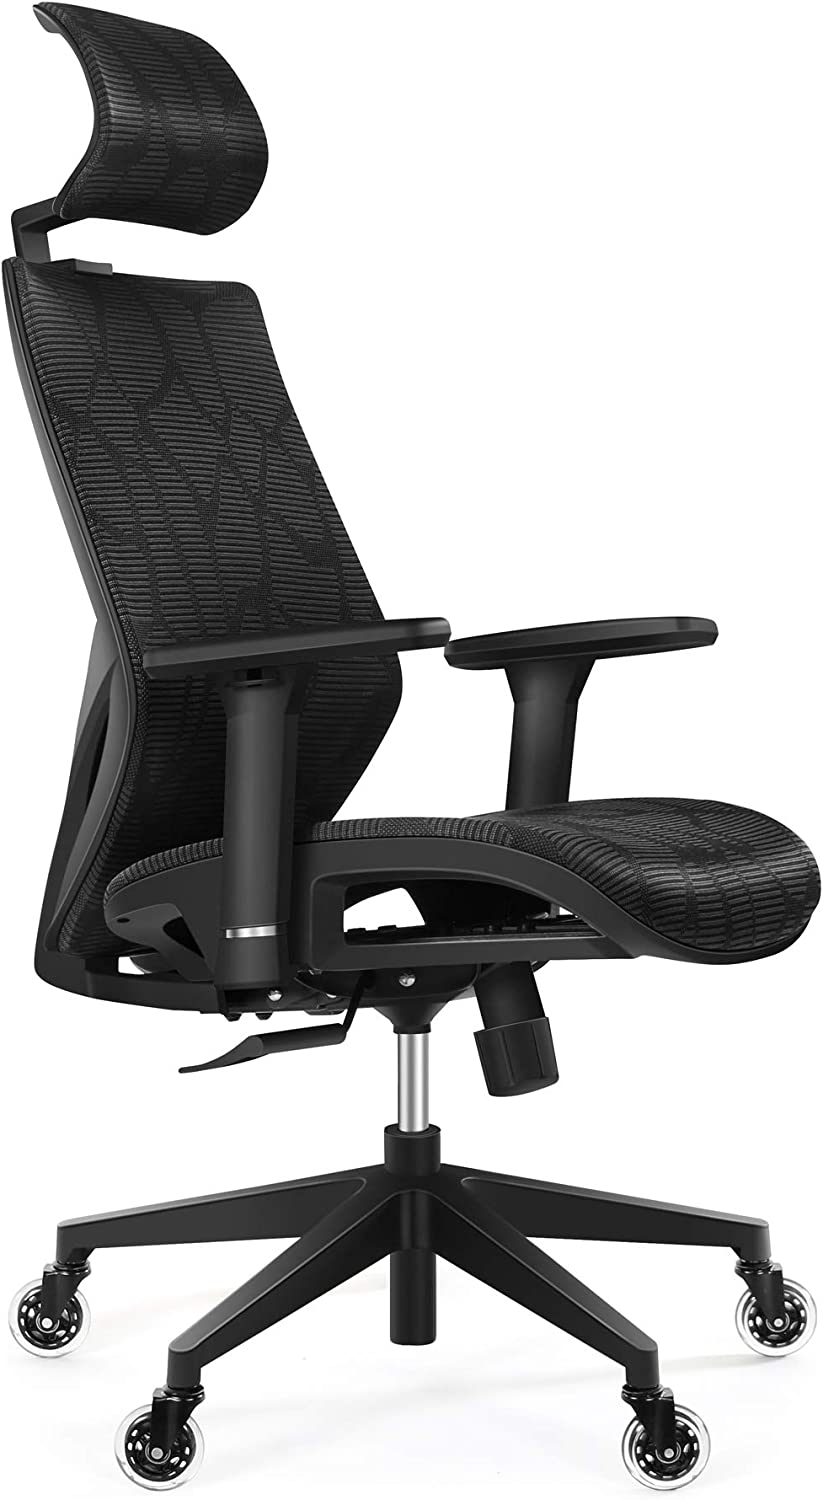 4. Tribesigns Ergonomic Office Chair – Best Computer Chair